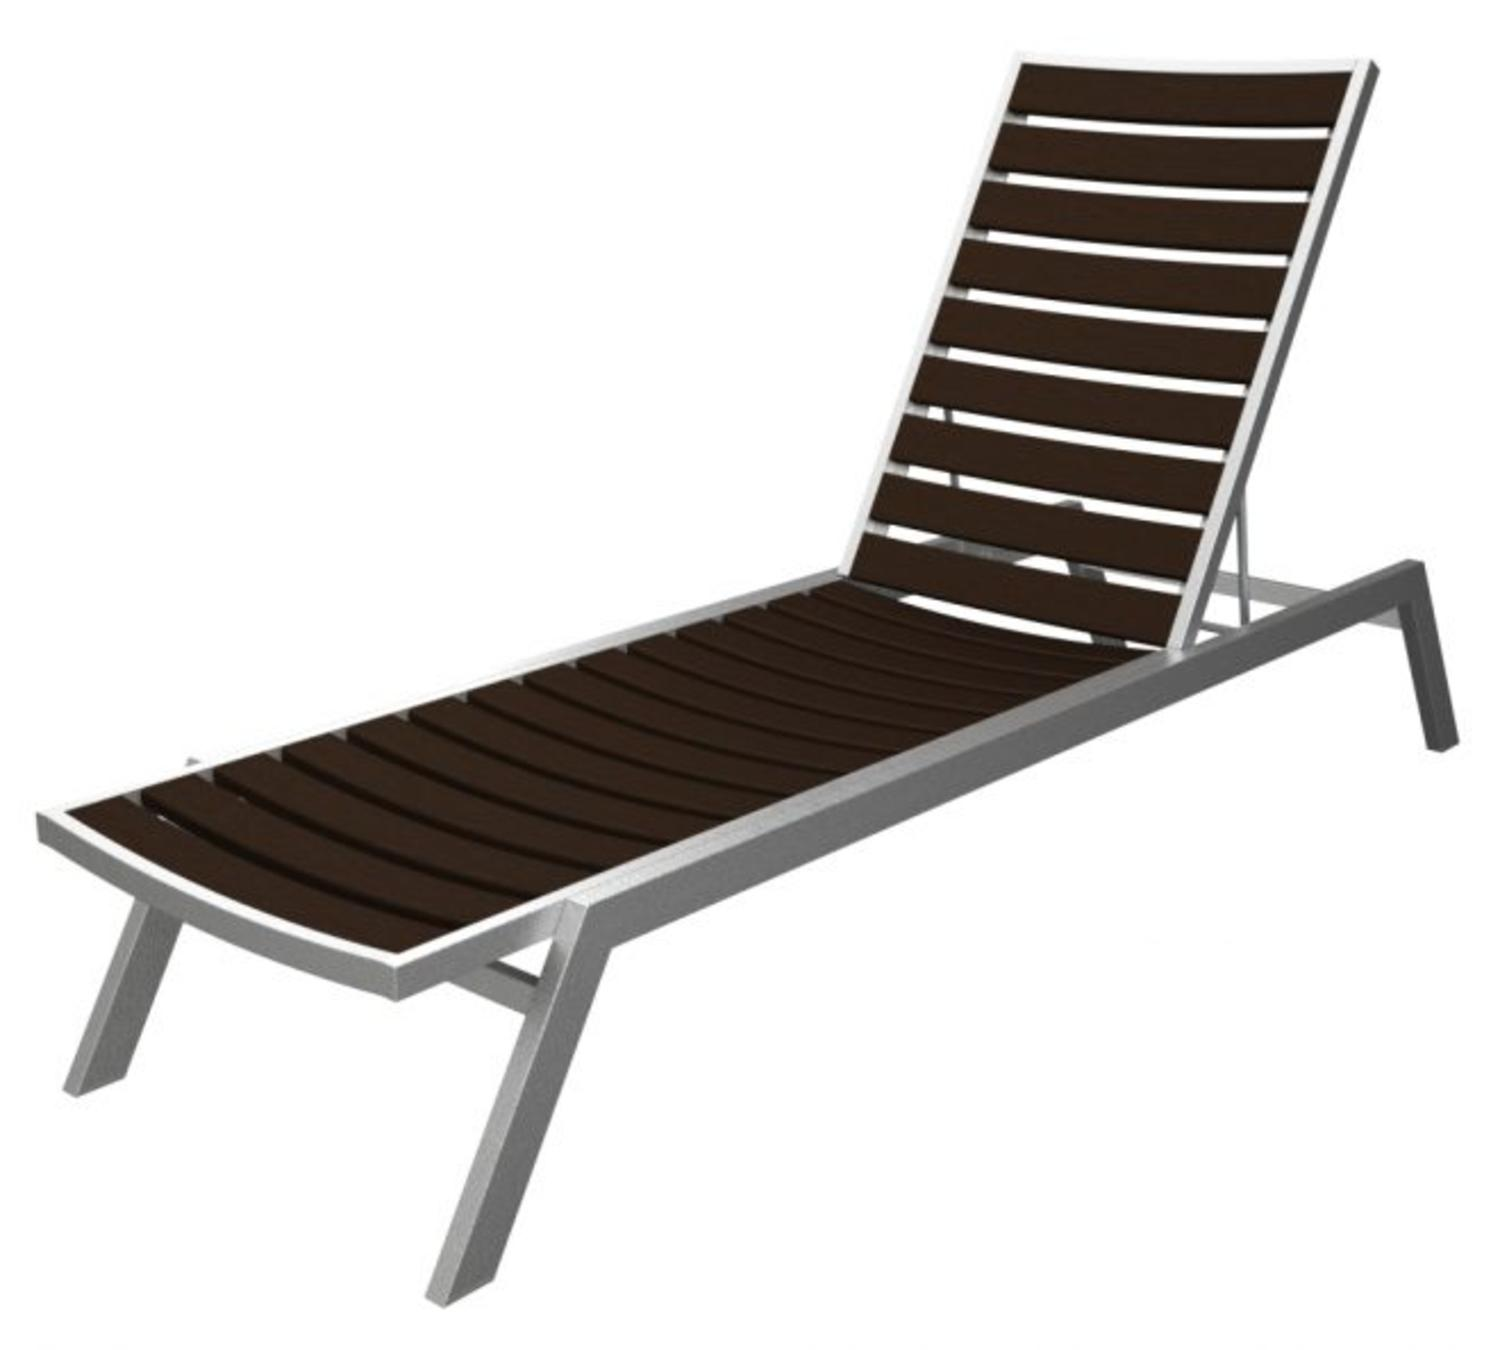 Recycled European Outdoor Chaise Lounge Chair